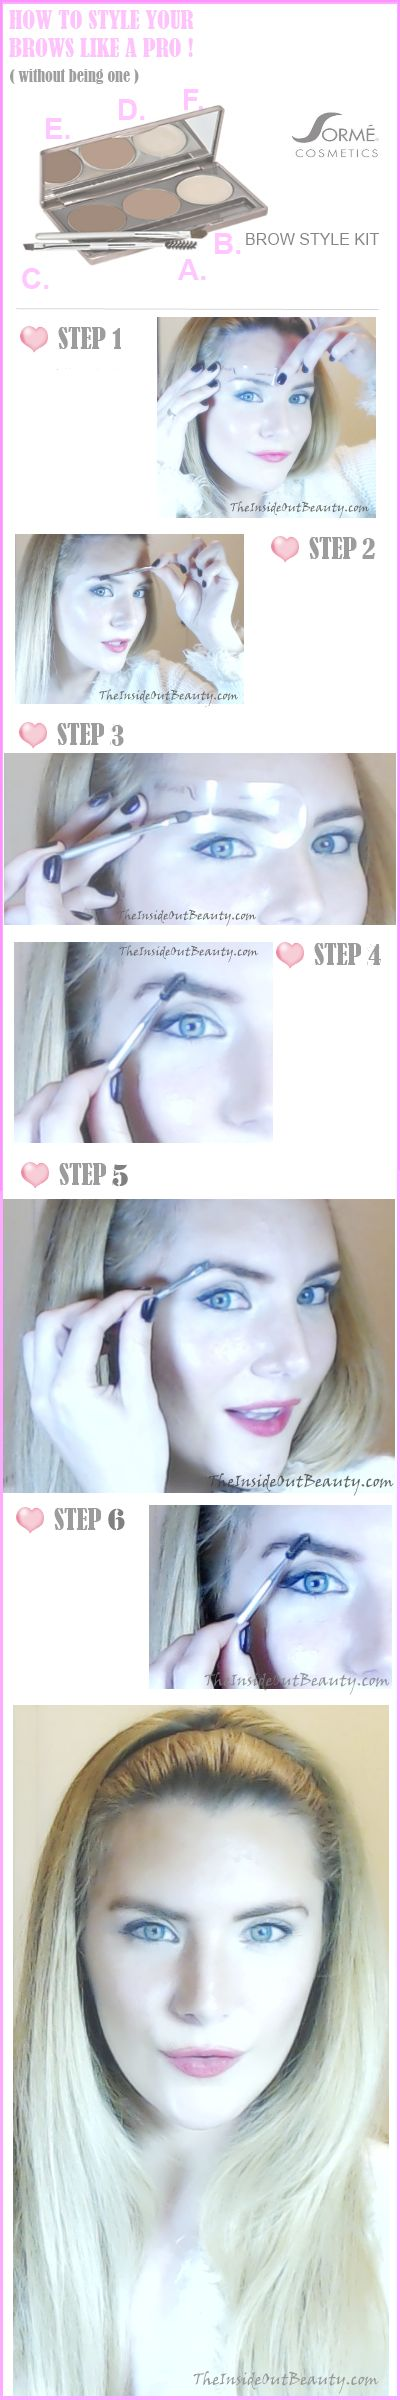 HOW TO STYLE YOUR BROWS LIKE A PRO! Please, REPIN & keep reading on my blog :)  http://www.theinsideoutbeauty.com/2013/07/howto-style-your-brows-like-pro-makeup.html